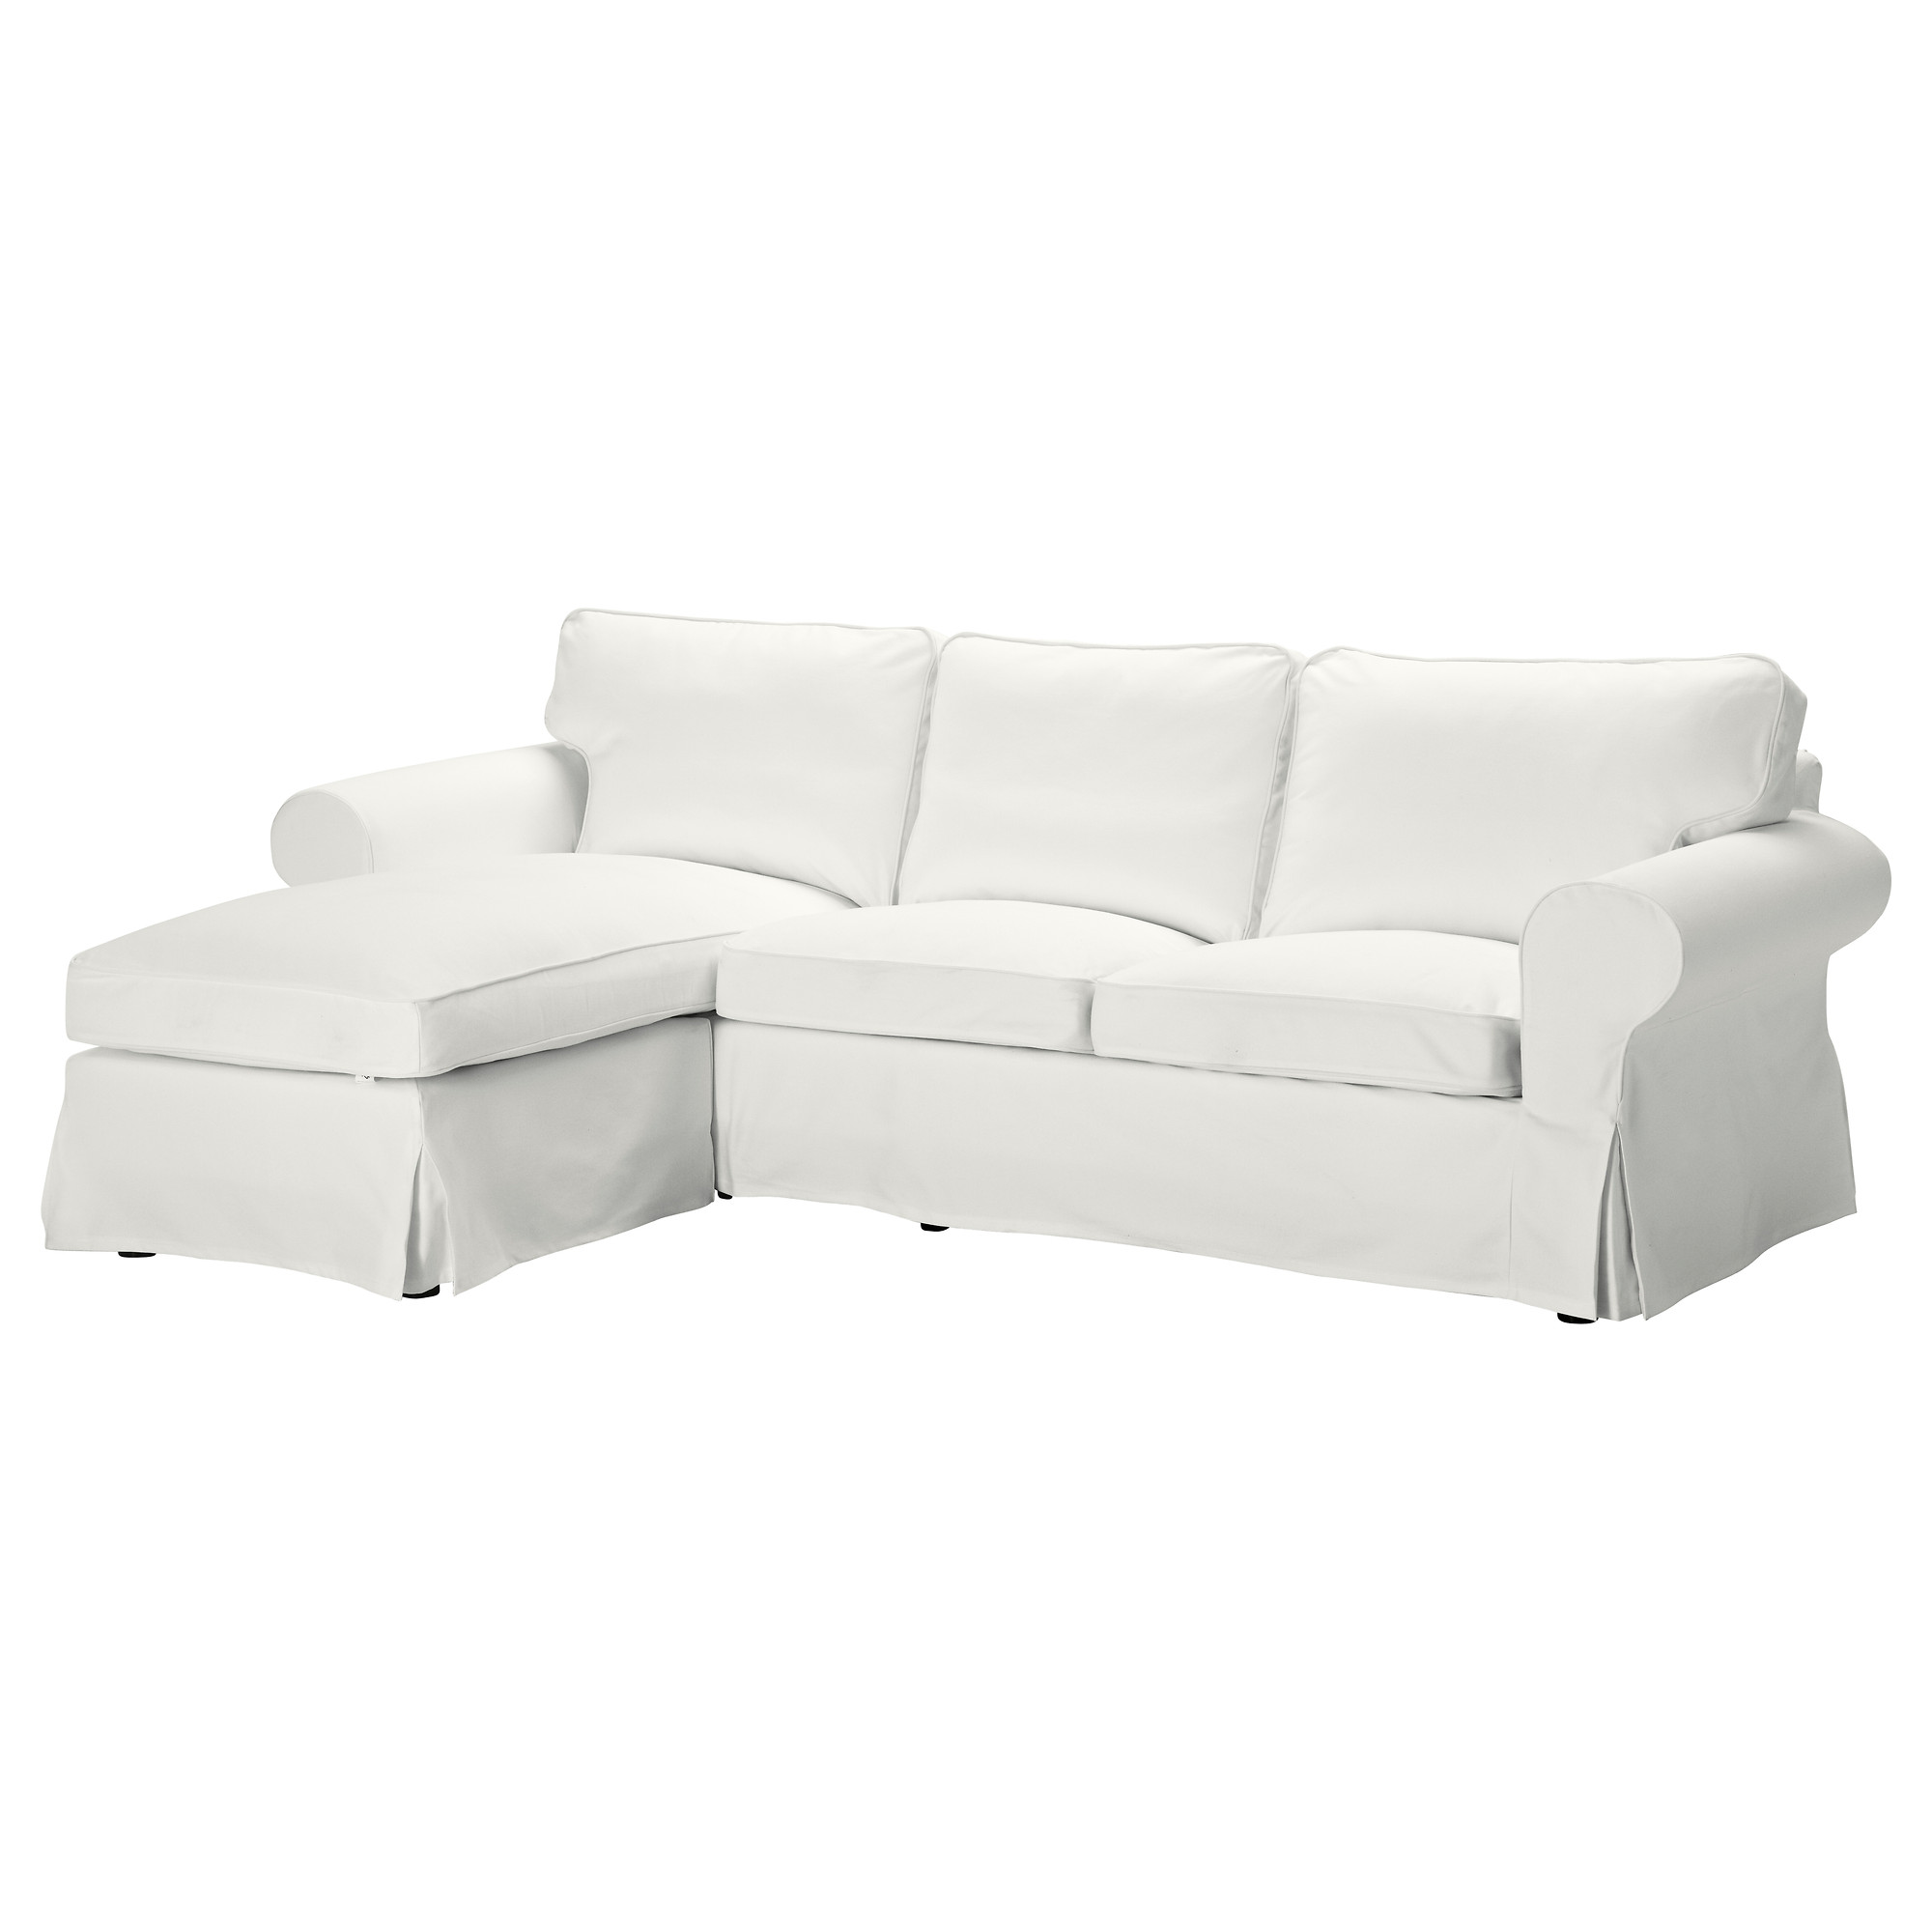 Living Room   $499 EKTORP Loveseat And Chaise Lounge   Blekinge White   IKEA